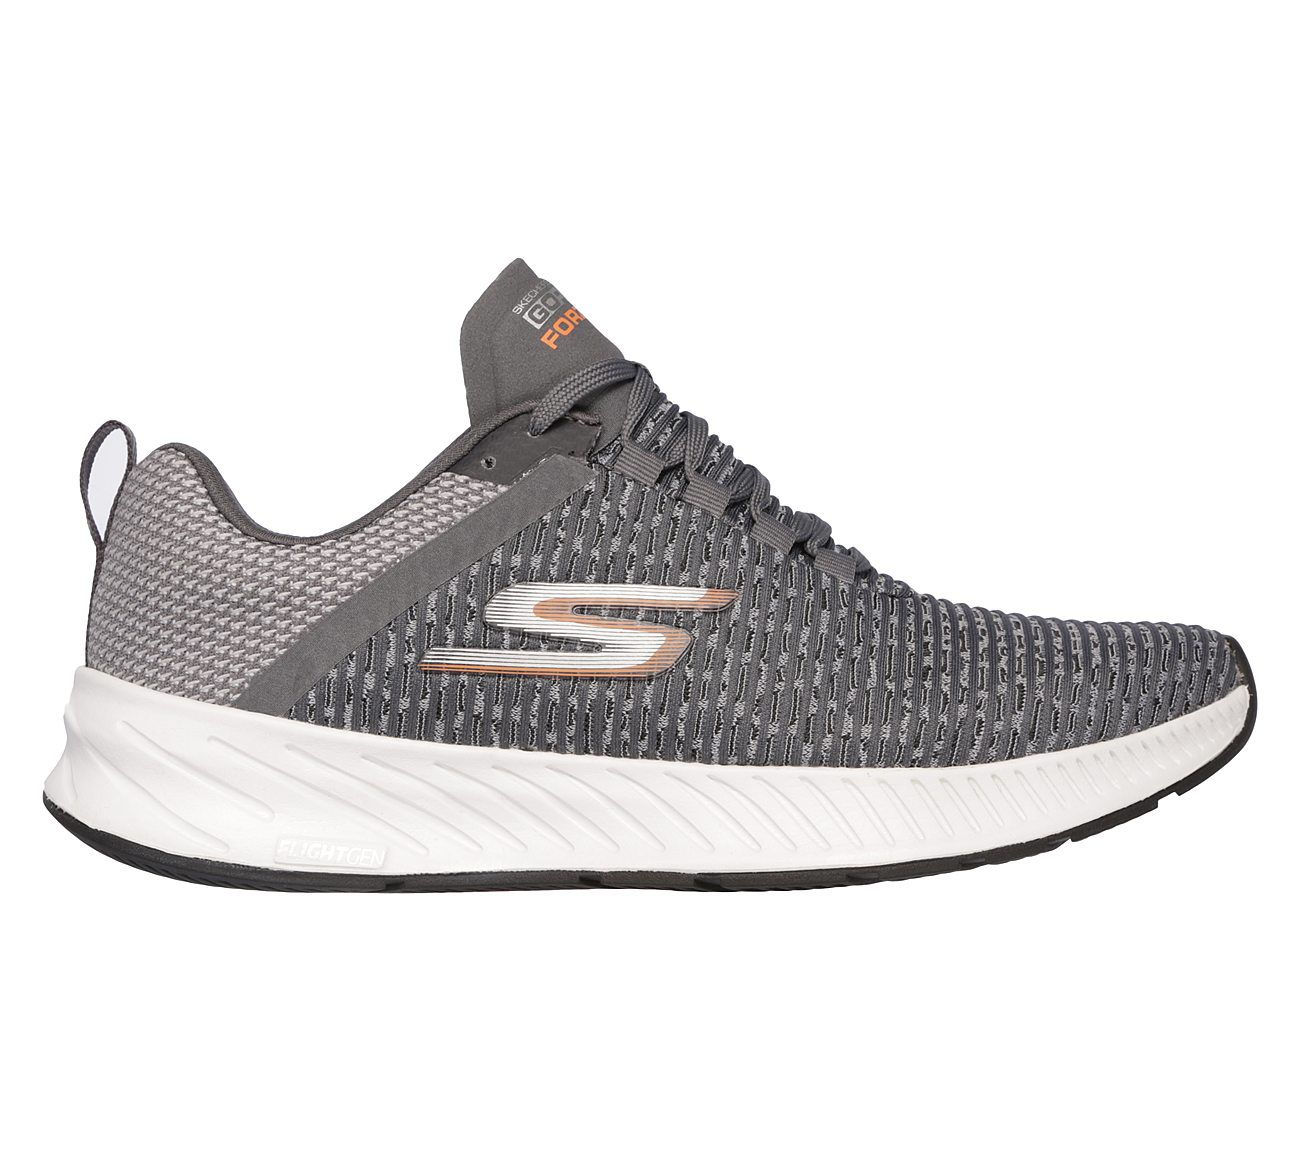 857064579987 Skechers Running Shoes